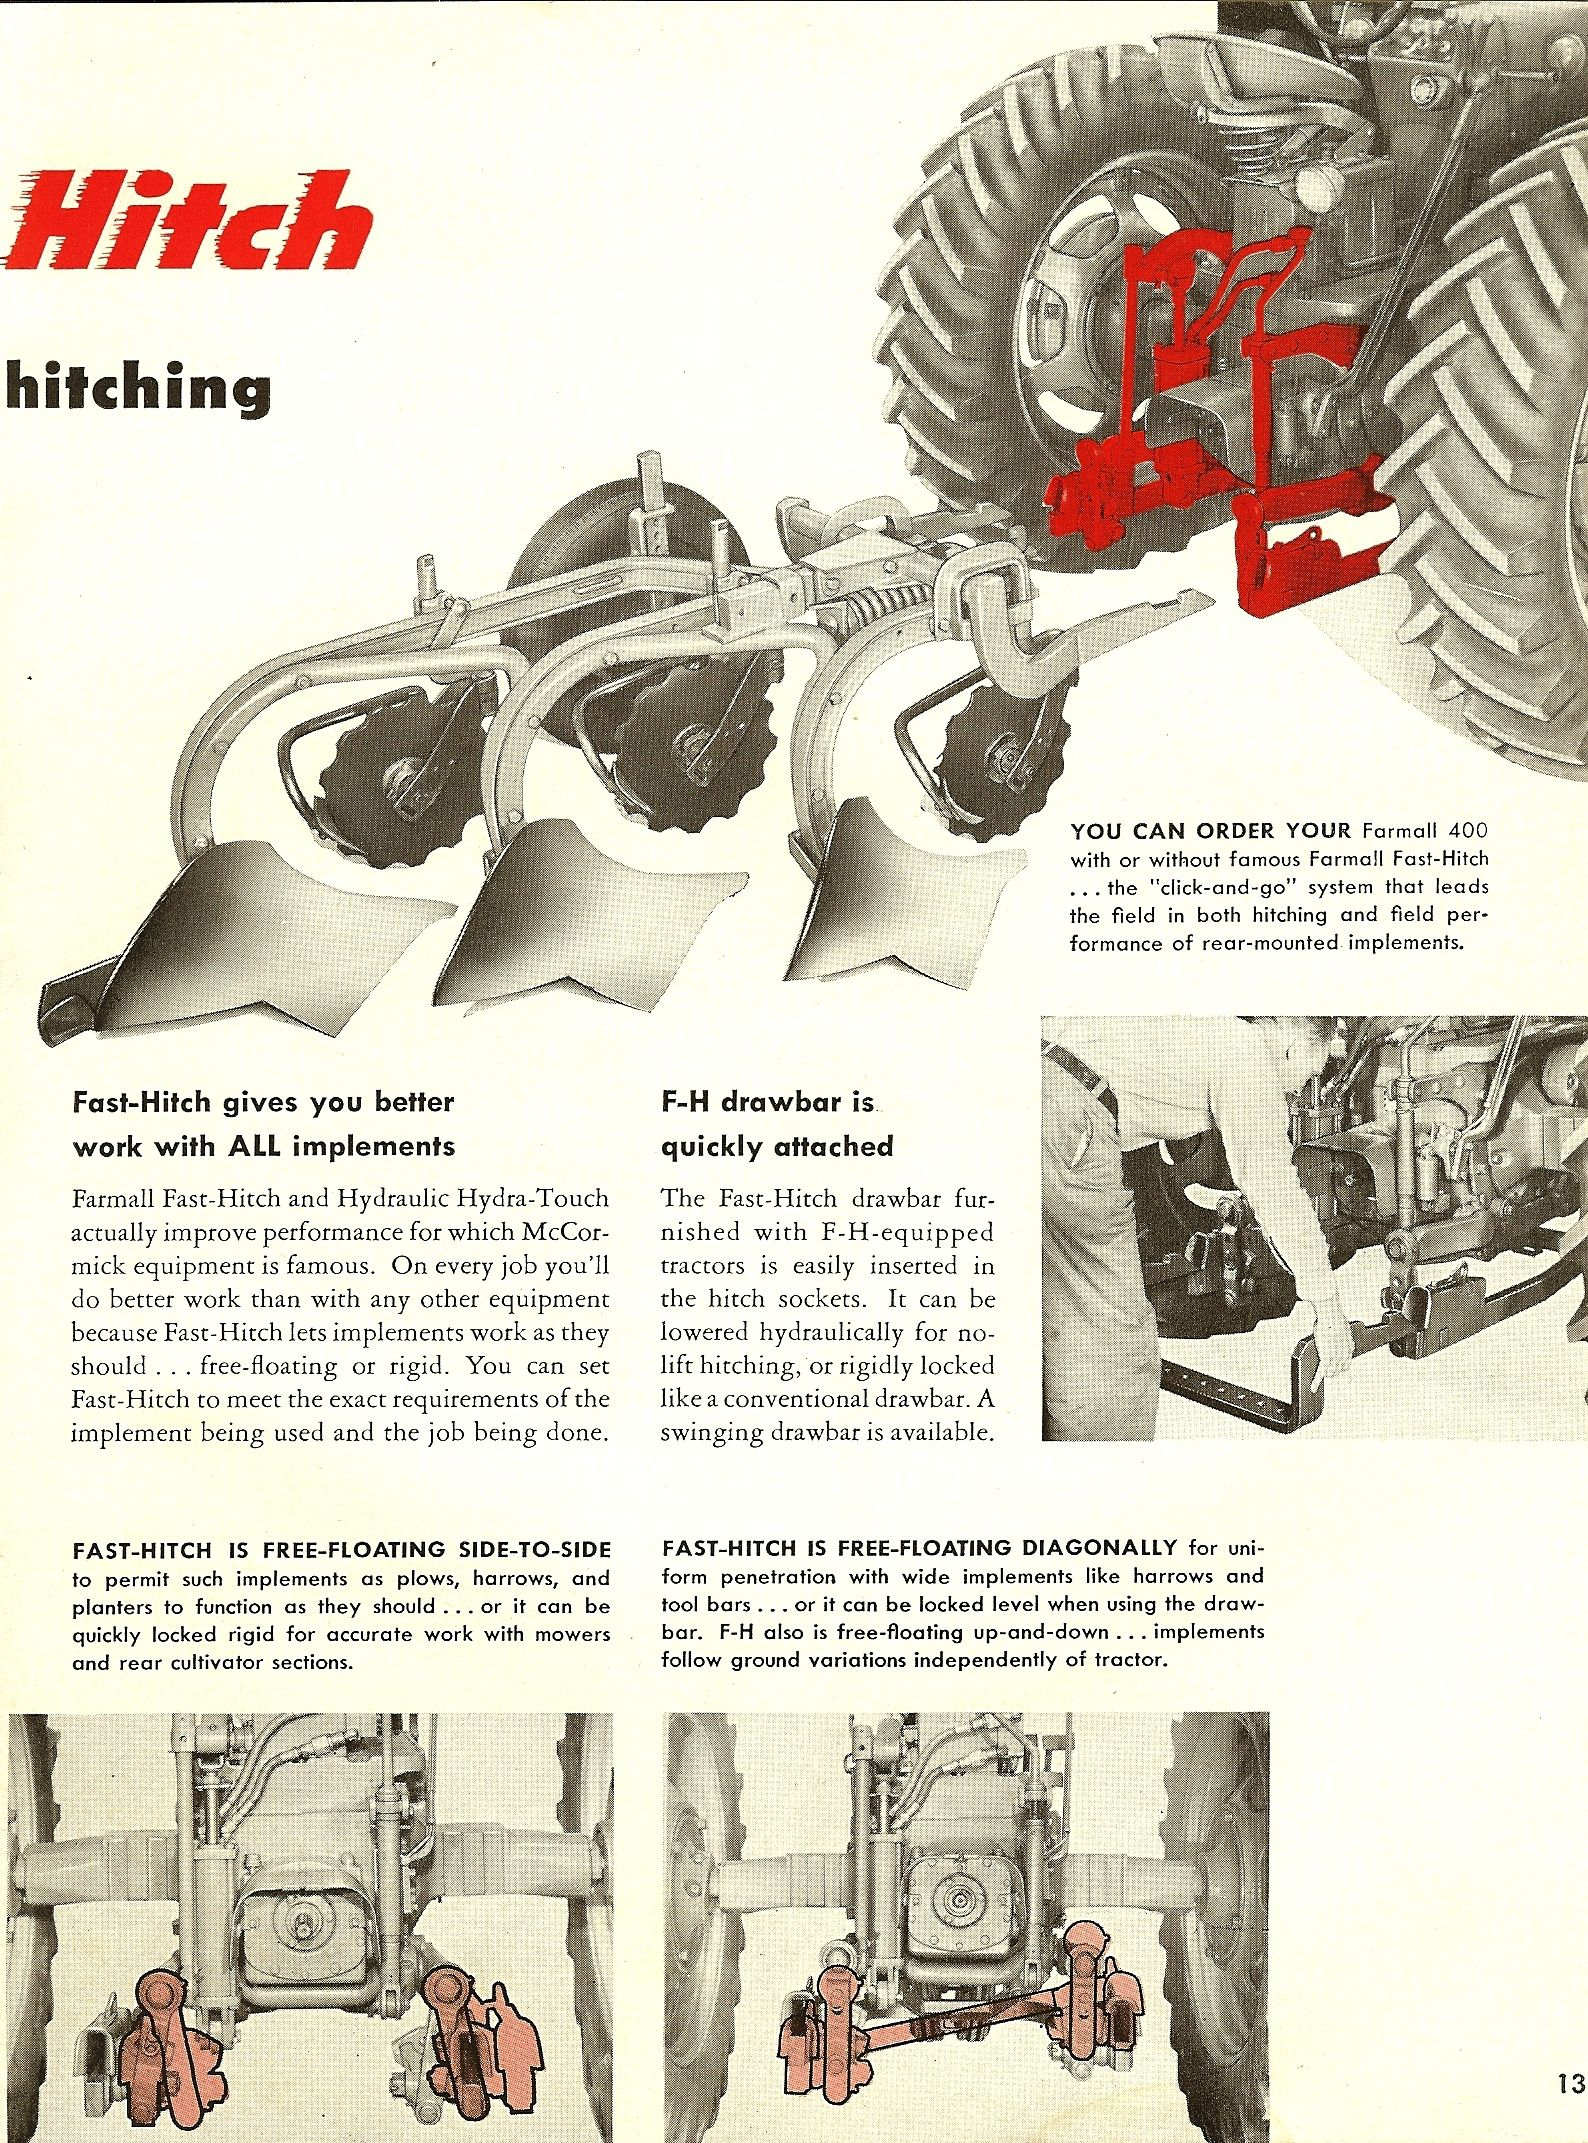 farmall international harvester advertising pinterest jpg 1588x2143 400 farmall hitch parts [ 1588 x 2143 Pixel ]